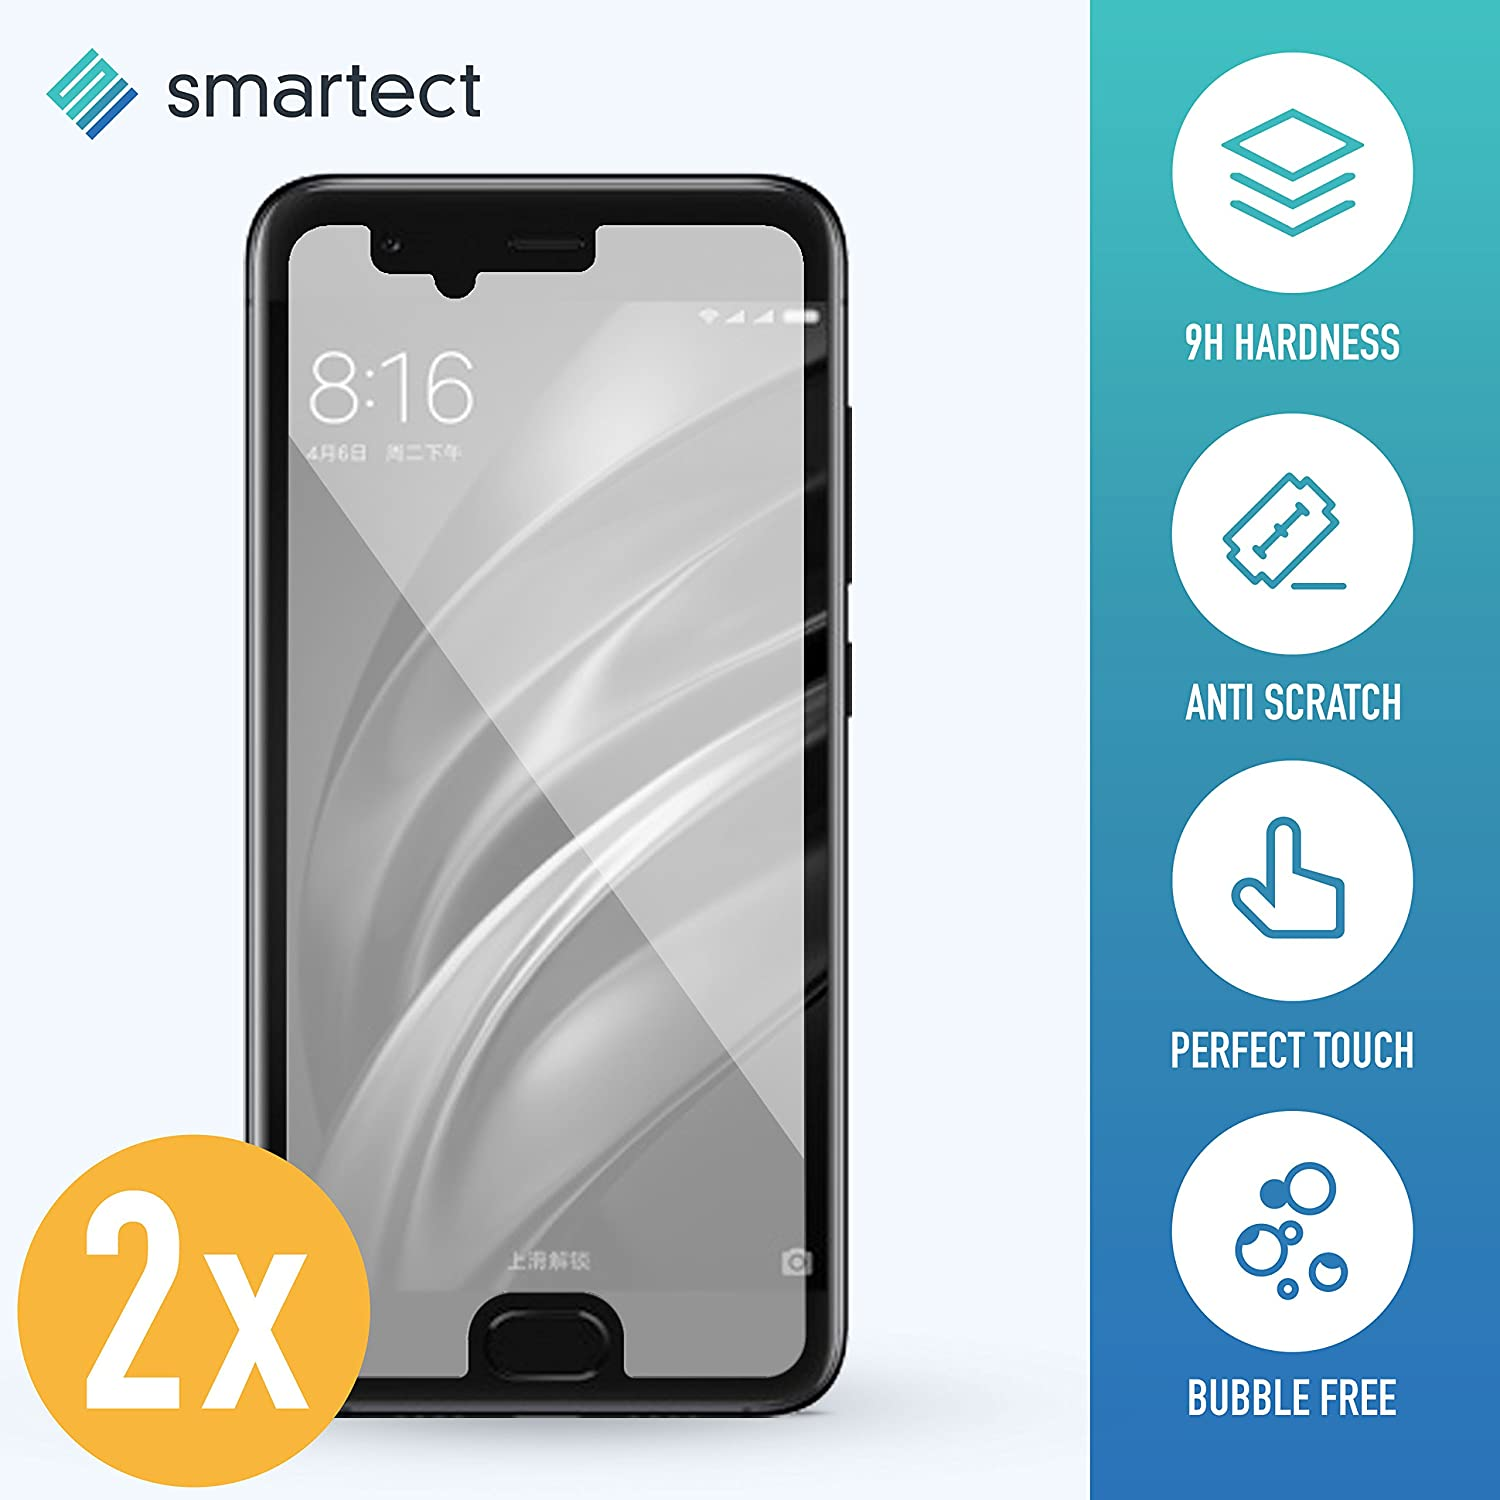 2x Tempered Glass Film for Xiaomi Mi 6 by smartect® | Tempered Glass Screen Protector Ultra-Thin 0,3mm | Protective film with 9H hardness